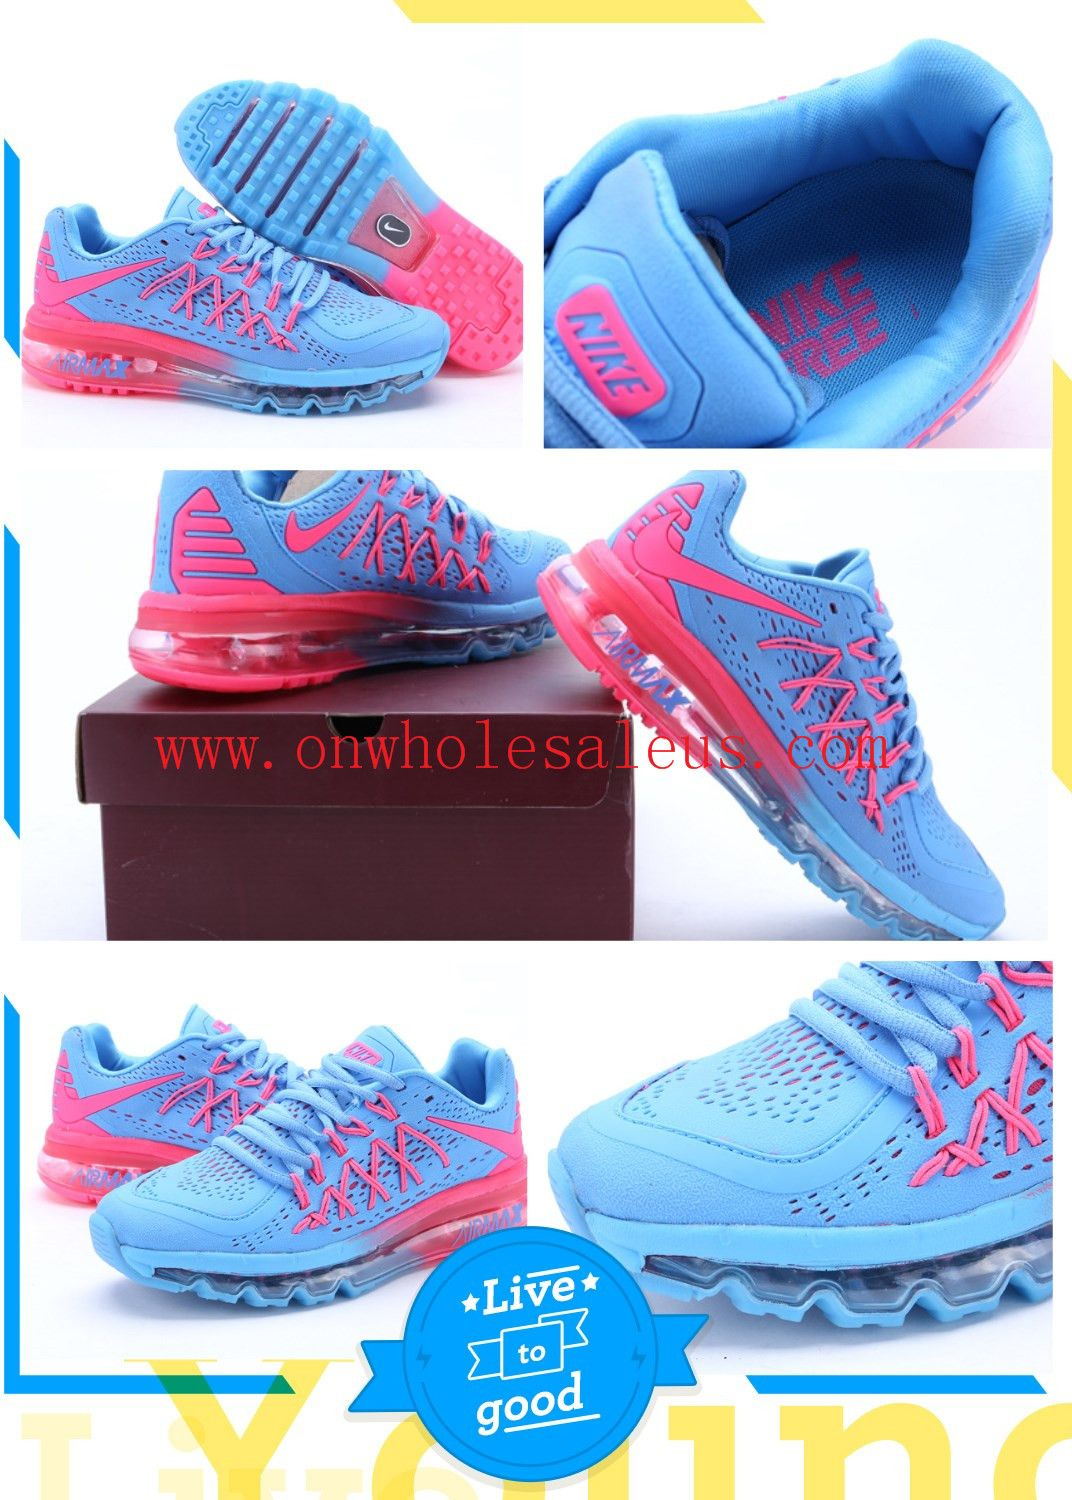 outlet store 537b2 3710a Wholesale Cheap Nike Air Max 2015 Womens sneakers online shopping size  5.5-8.5  72 online